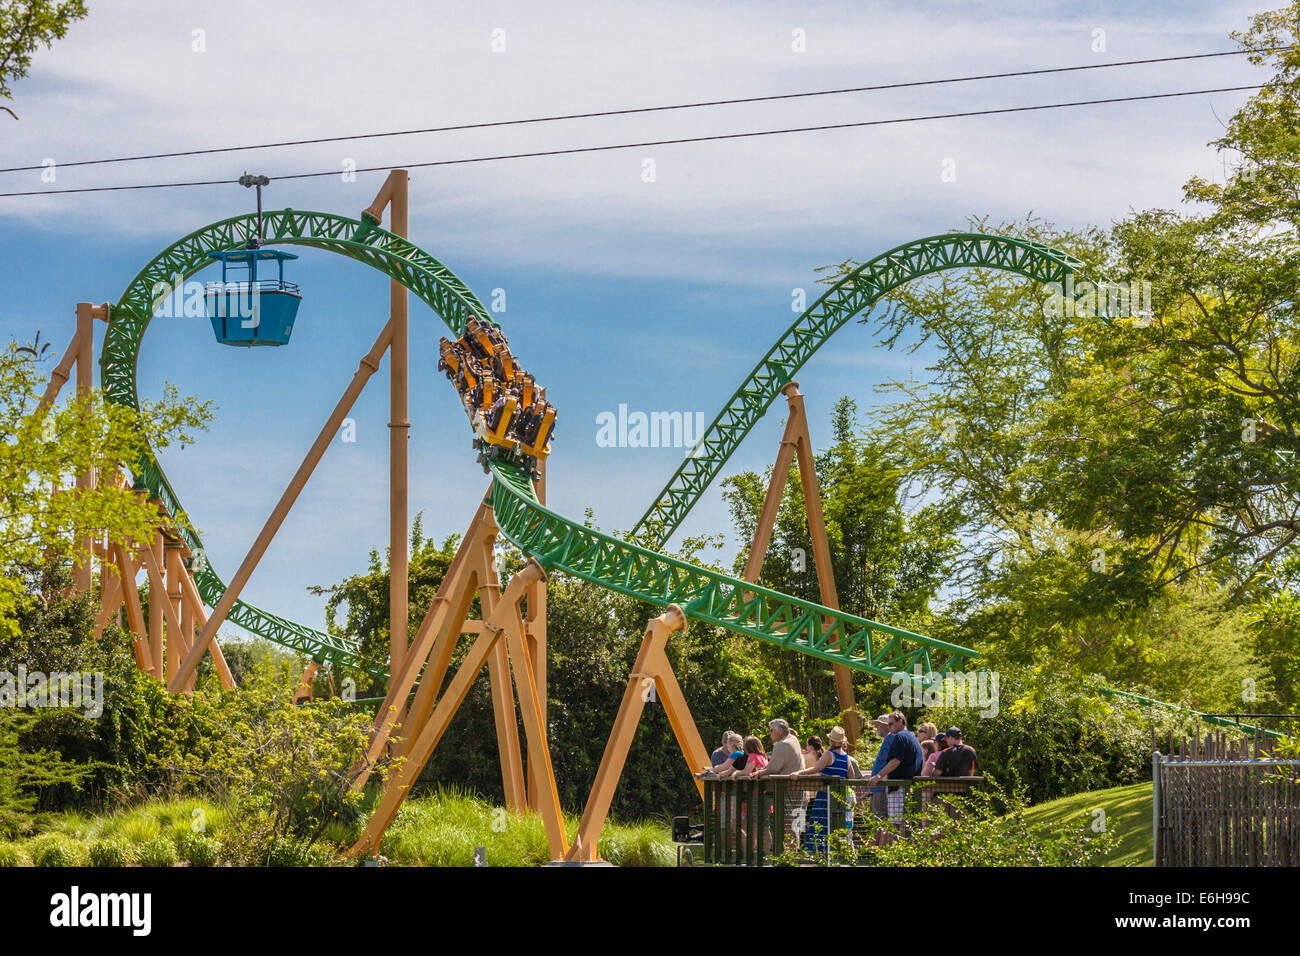 Park Guests Riding Cheetah Hunt Roller Coaster At Busch Gardens Tampa Bay  In Tampa, Florida